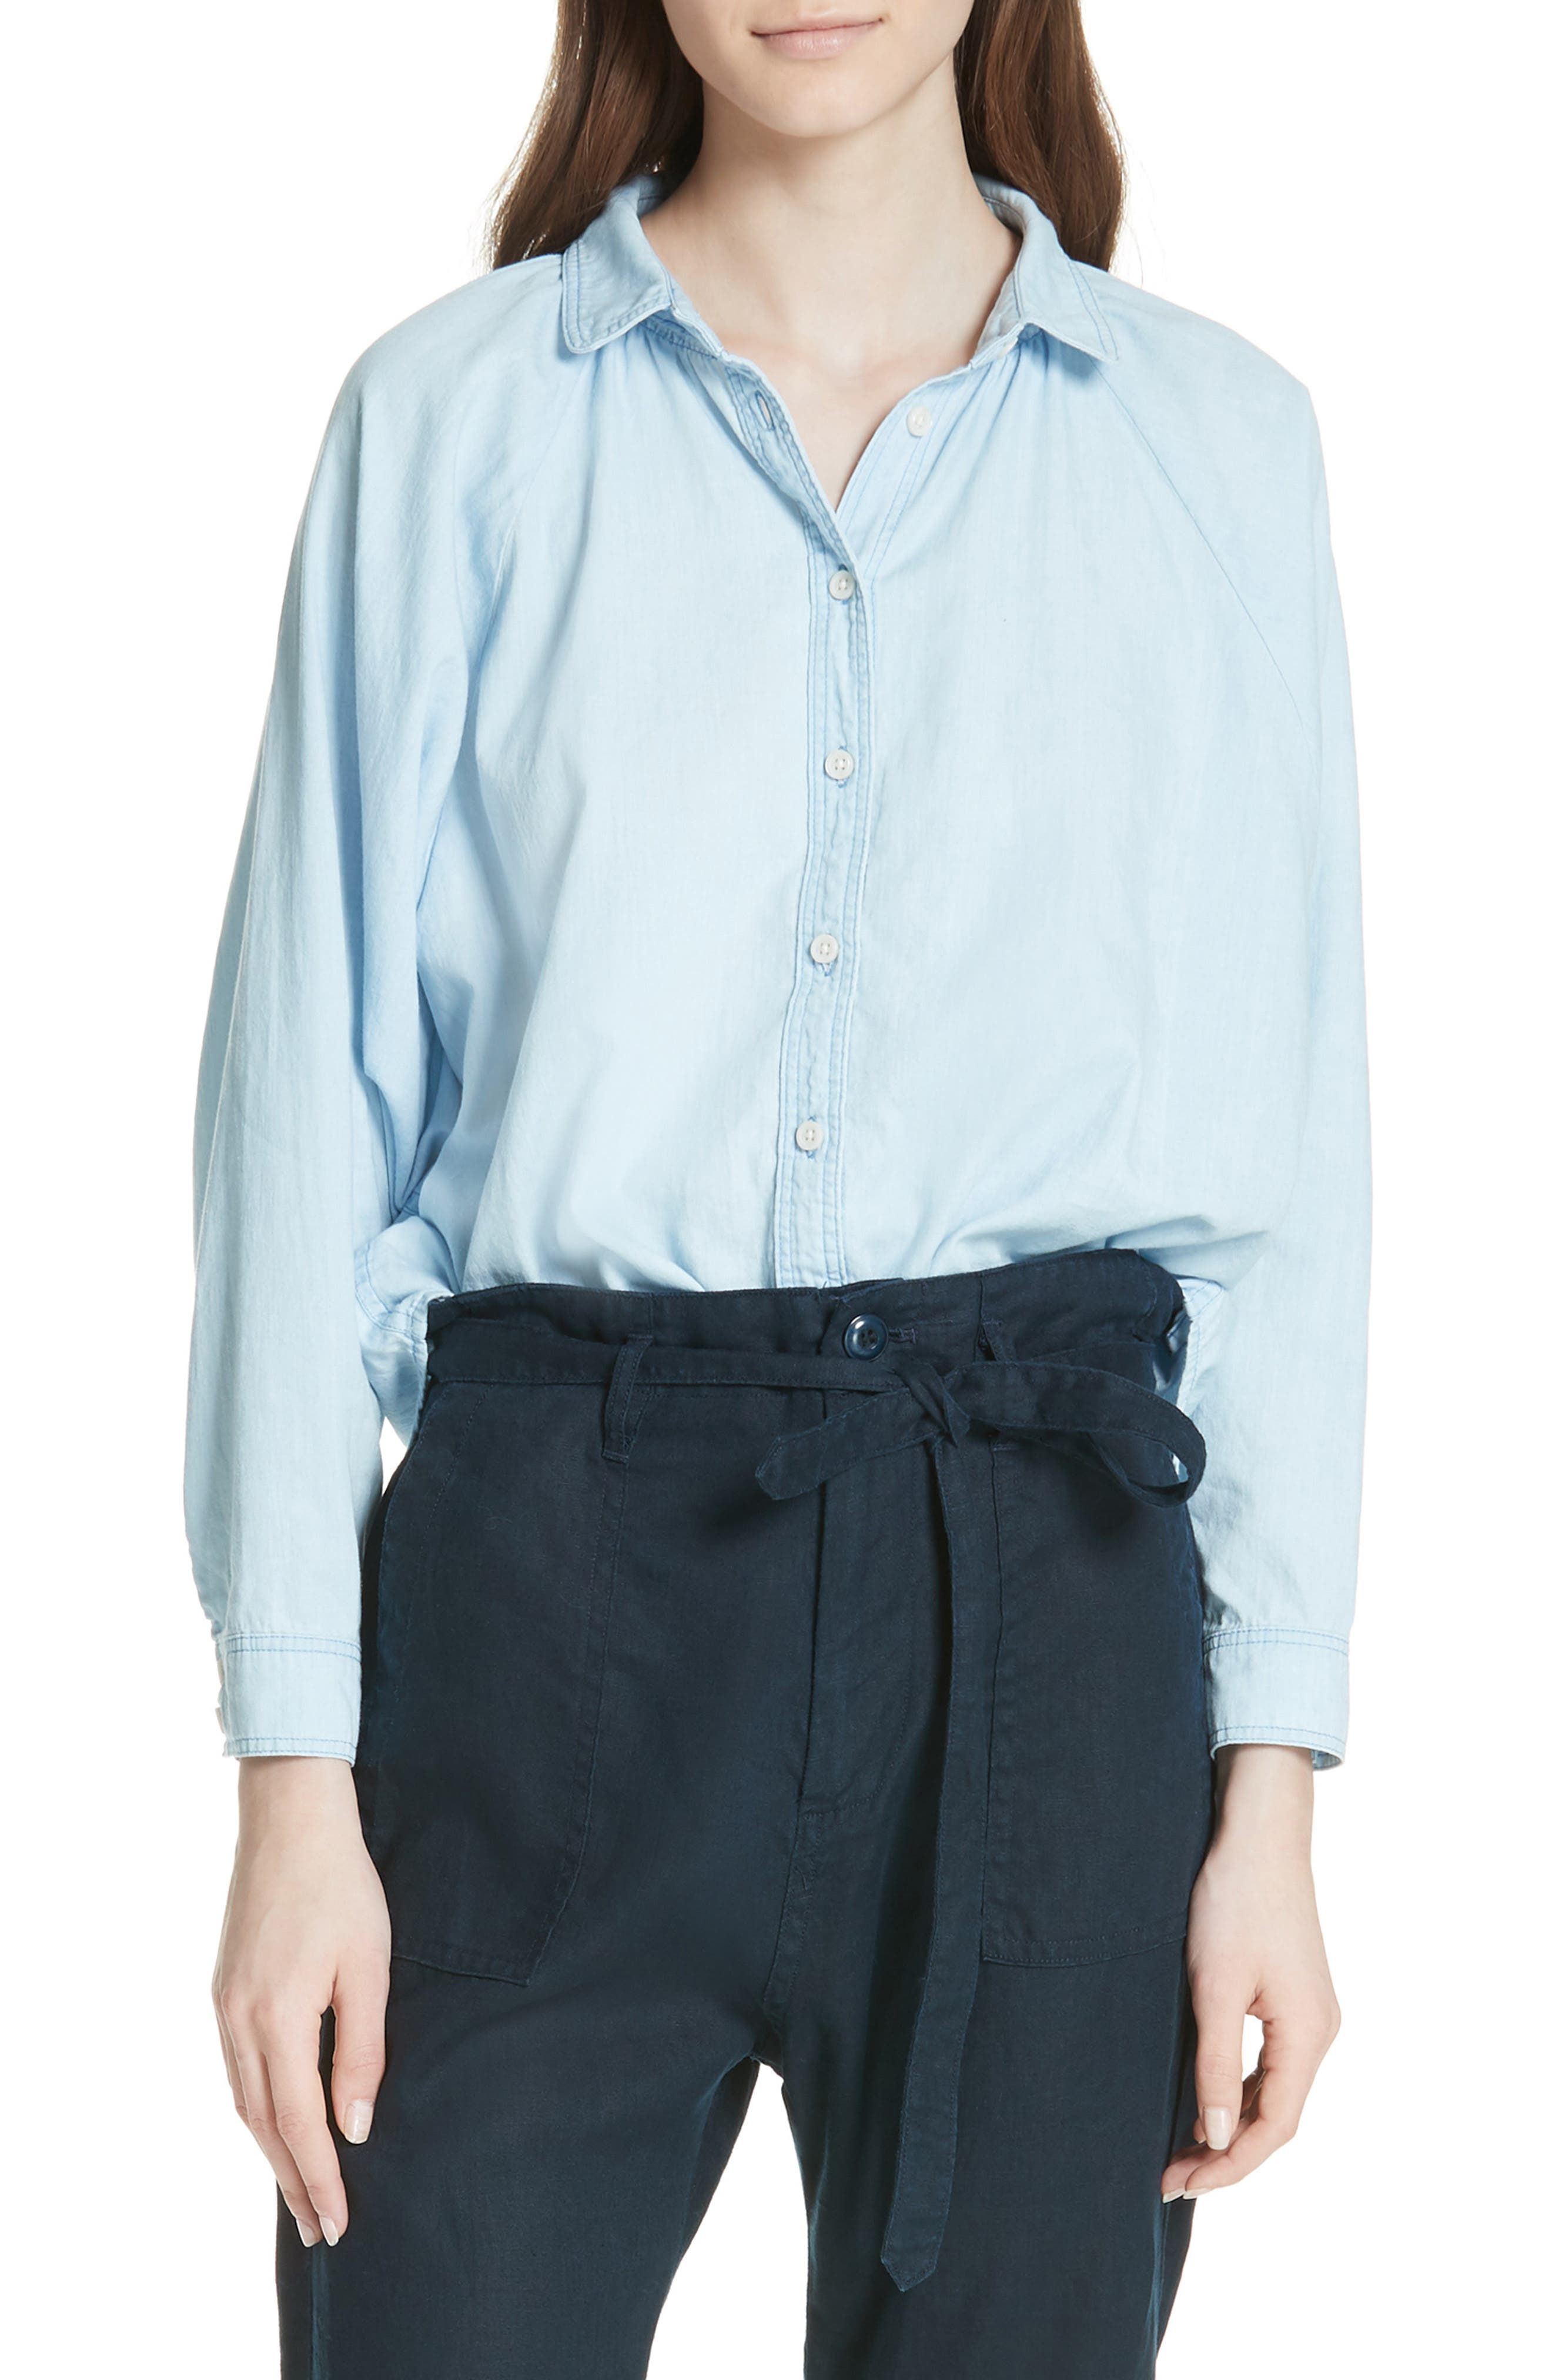 THE GREAT THE ESTATE BUTTON-UP SHIRT